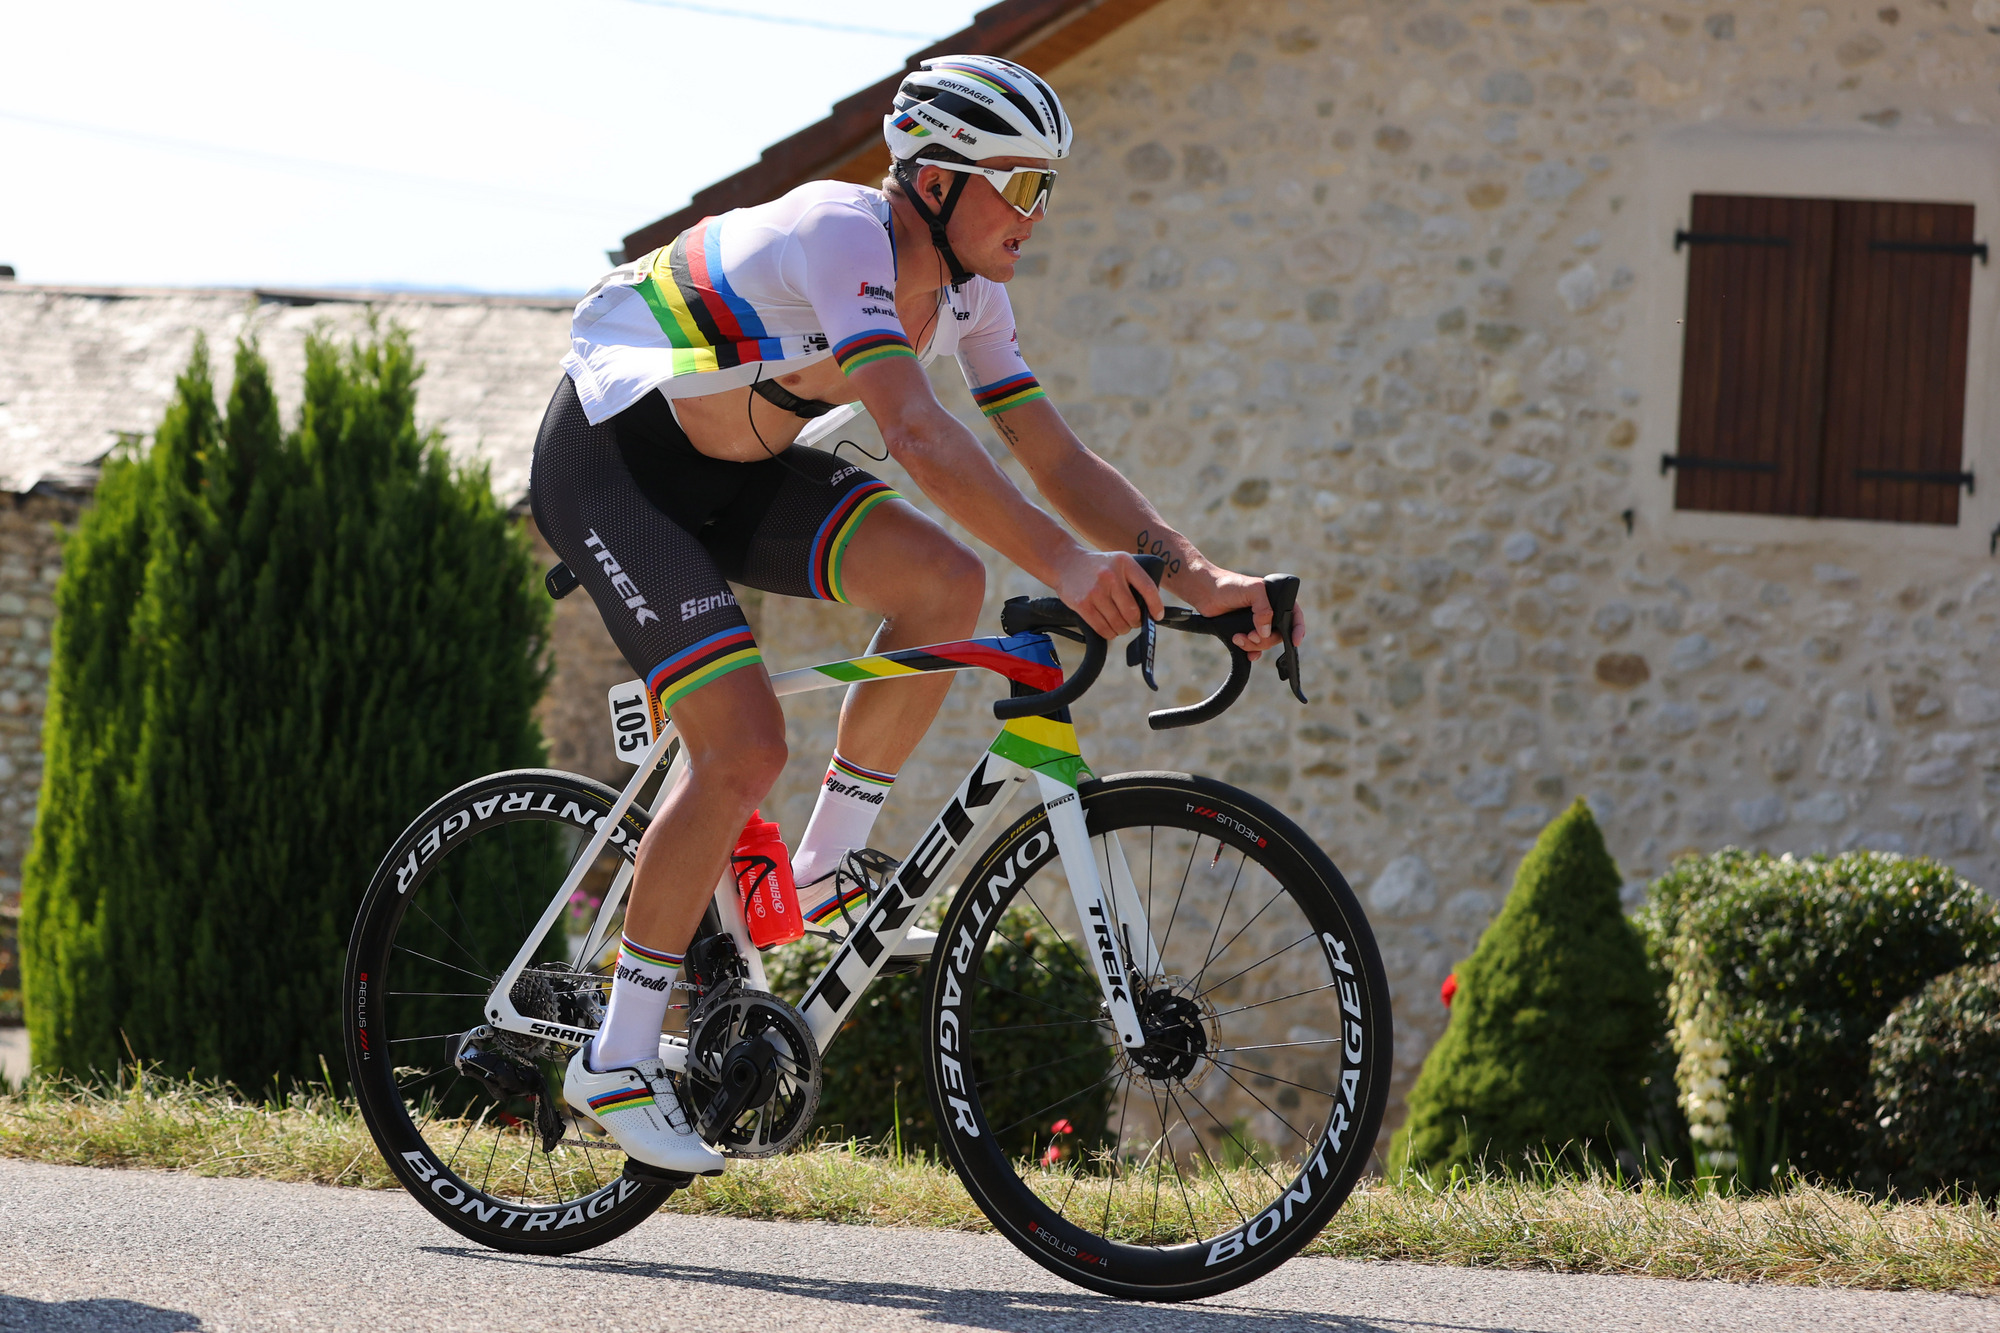 Road race champion Mads Pedersen (Trek-Segafredo) at the 2020 Tour de France – his last race in the rainbow jersey